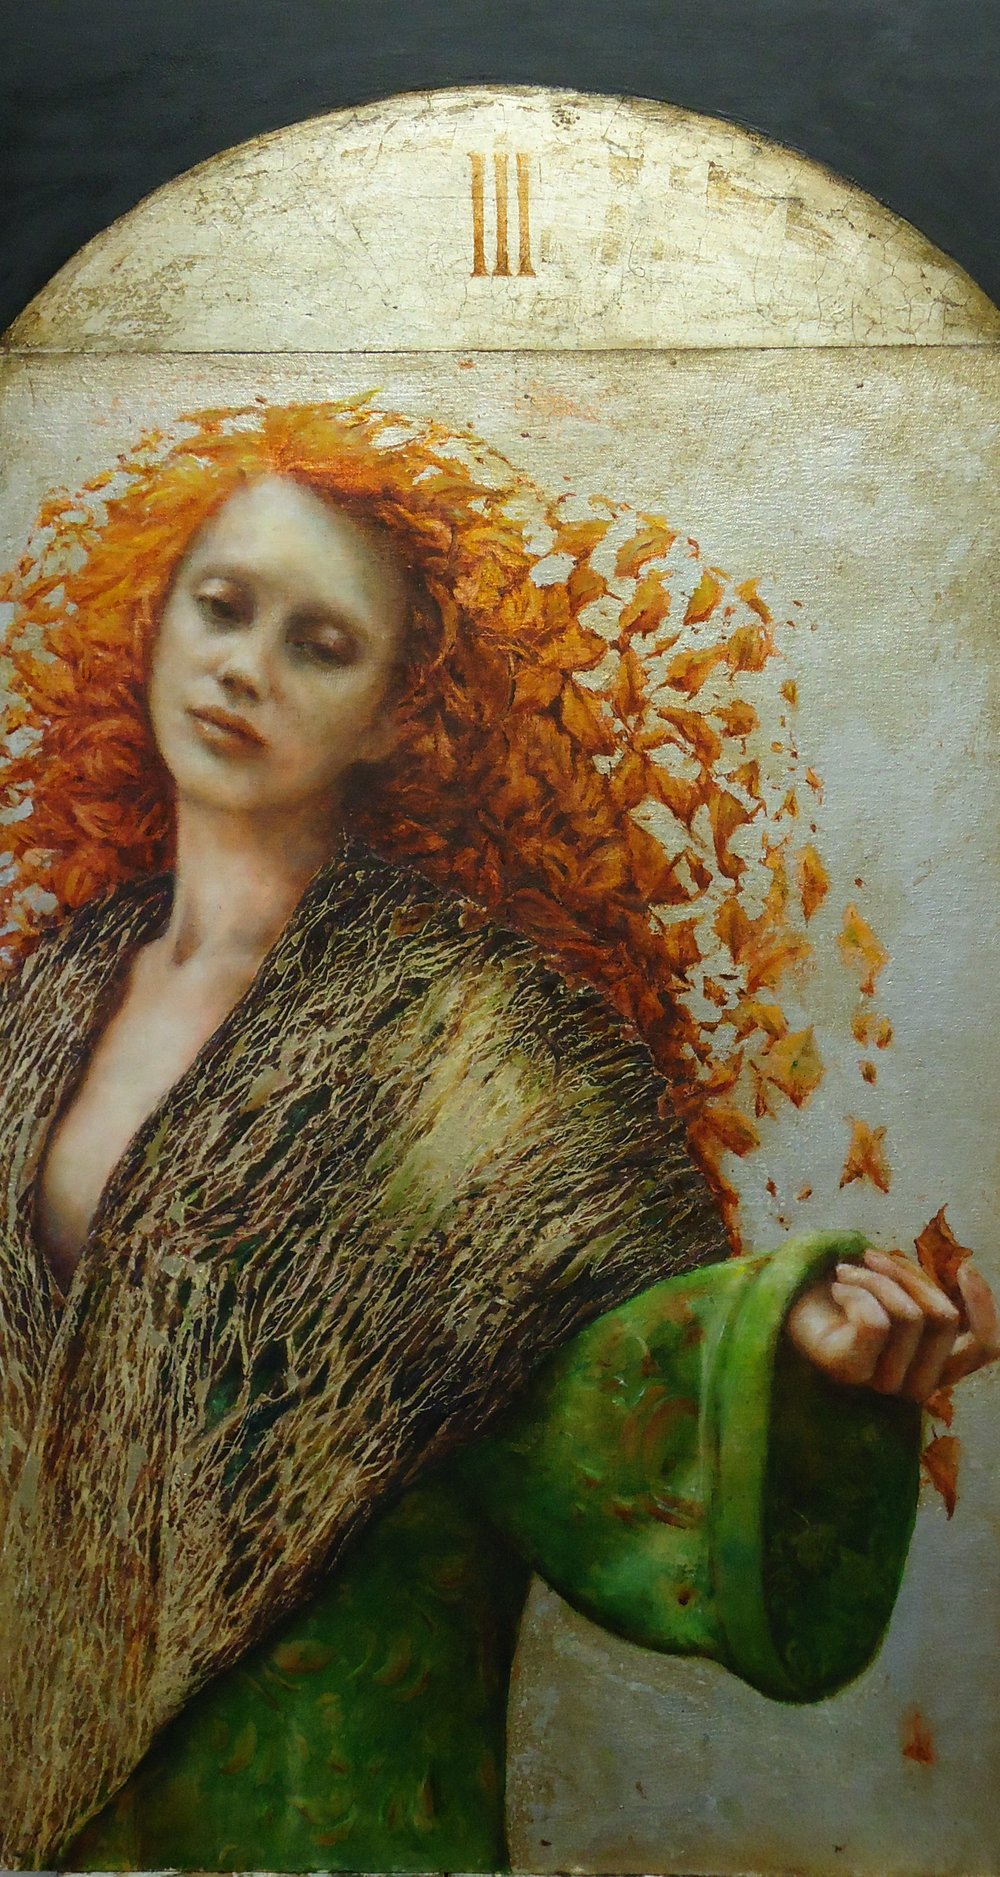 Pam Hawkes  |  Autumn (No. III of the Seasons series)  |  Oil, beeswax & metal leaf on board & canvas  |  34 ½ x 19 ¼ inches or 88 x 49 cm